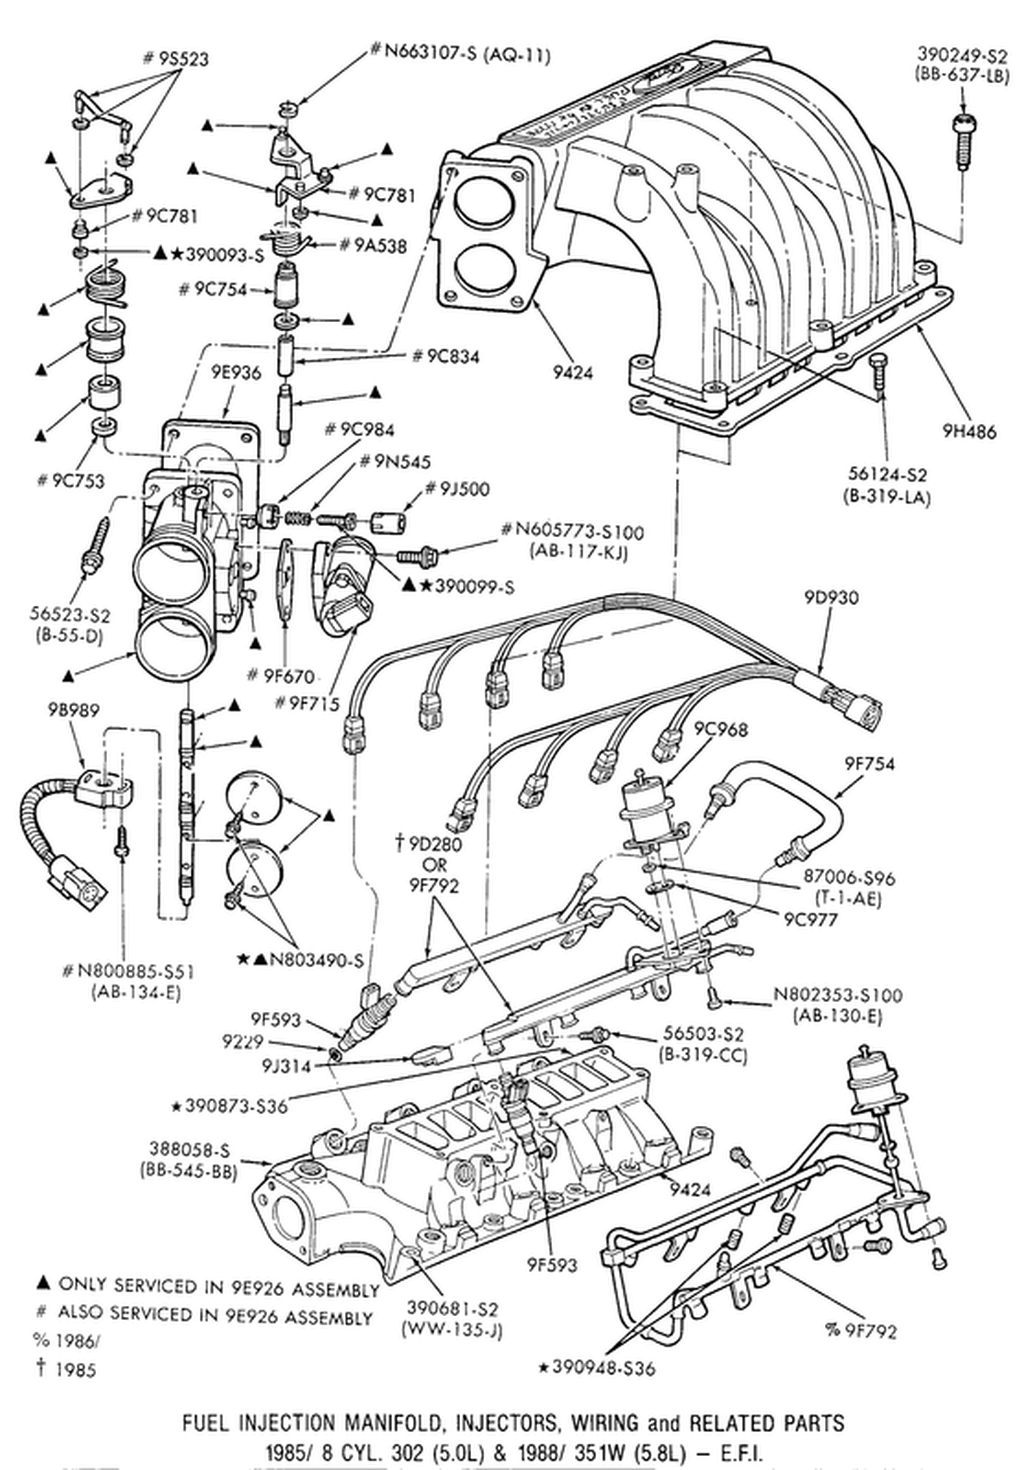 Plymouth Valiant V Wiring Diagram furthermore Instvoltreg likewise Efi together with F F F A Bcb Ebd Ac D as well . on ford fuel gauge wiring diagram